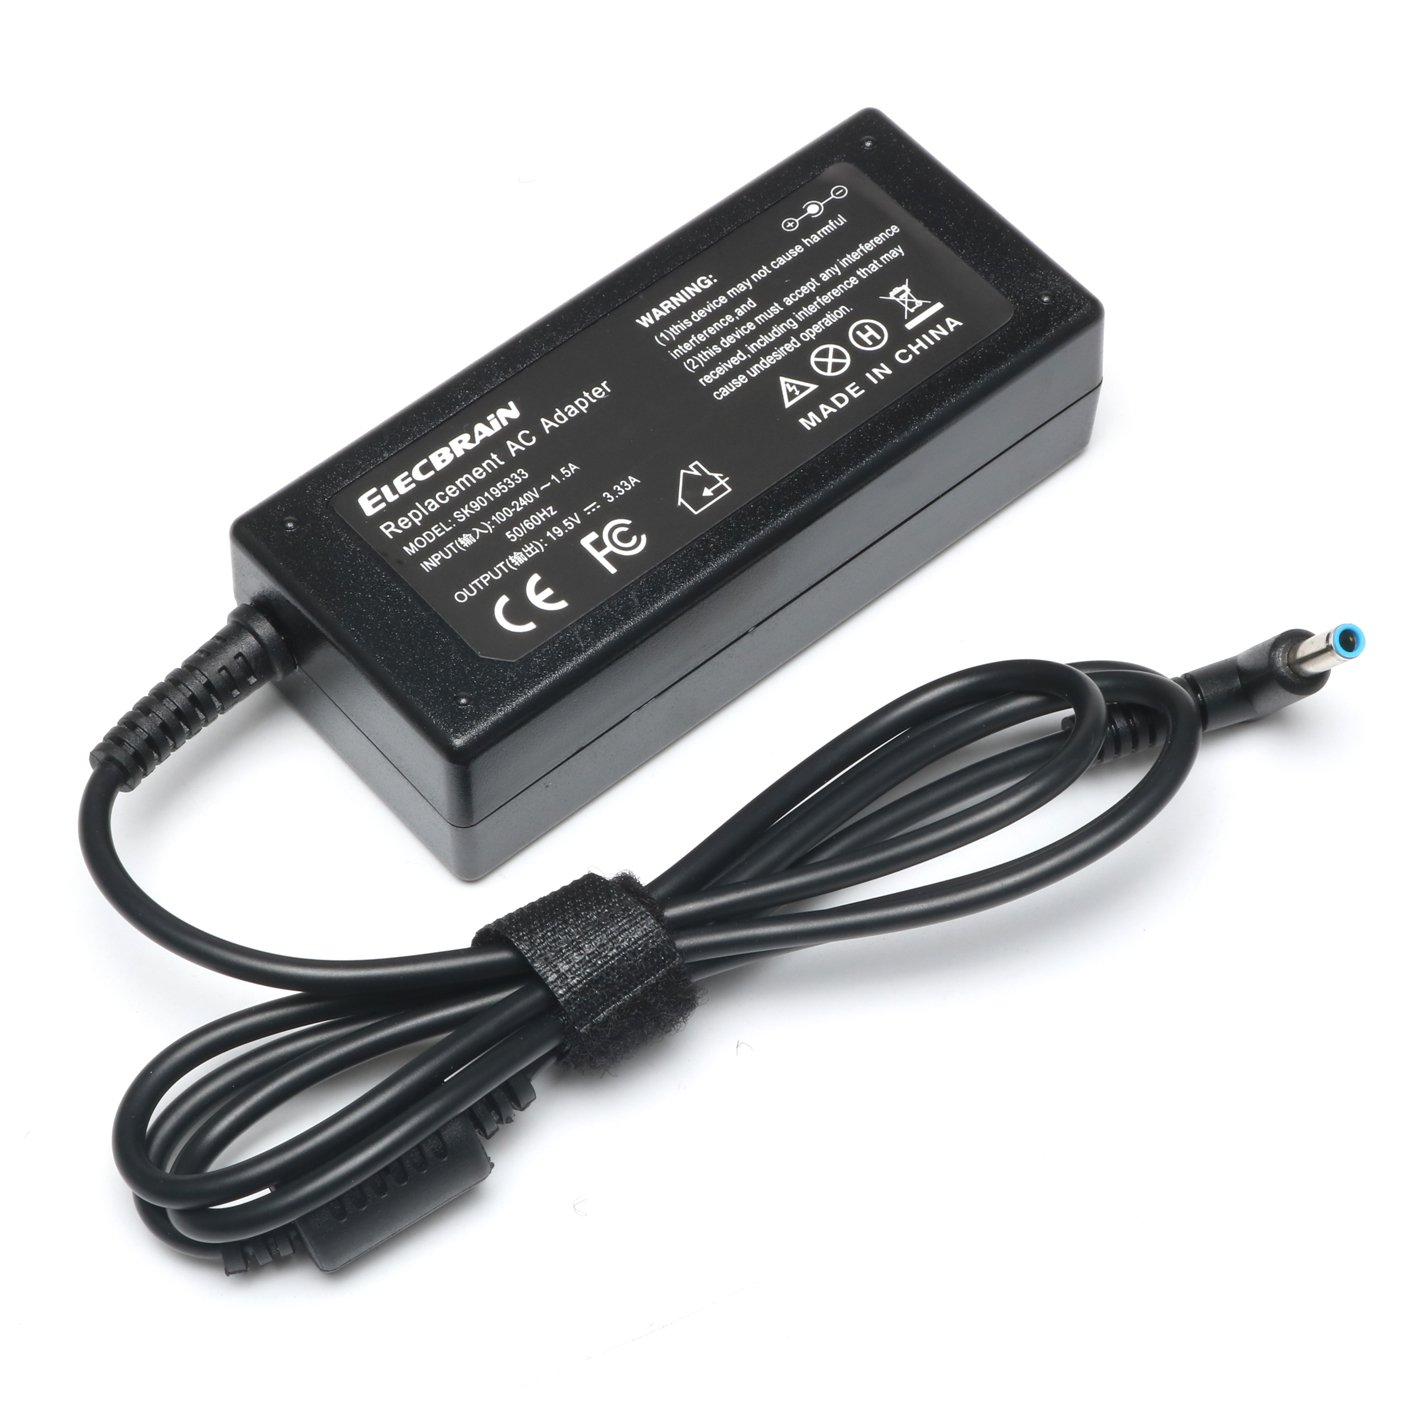 ELECBRAiN 19.5V 3.33A AC Adapter Charger for HP 15-F009WM 15-F023WM 15-F039WM 15-F059WM 15-g073nr F9H92UA 15-g074nr Laptop 4.5/3.0mm Power Supply with Cord by ELECBRAiN (Image #4)